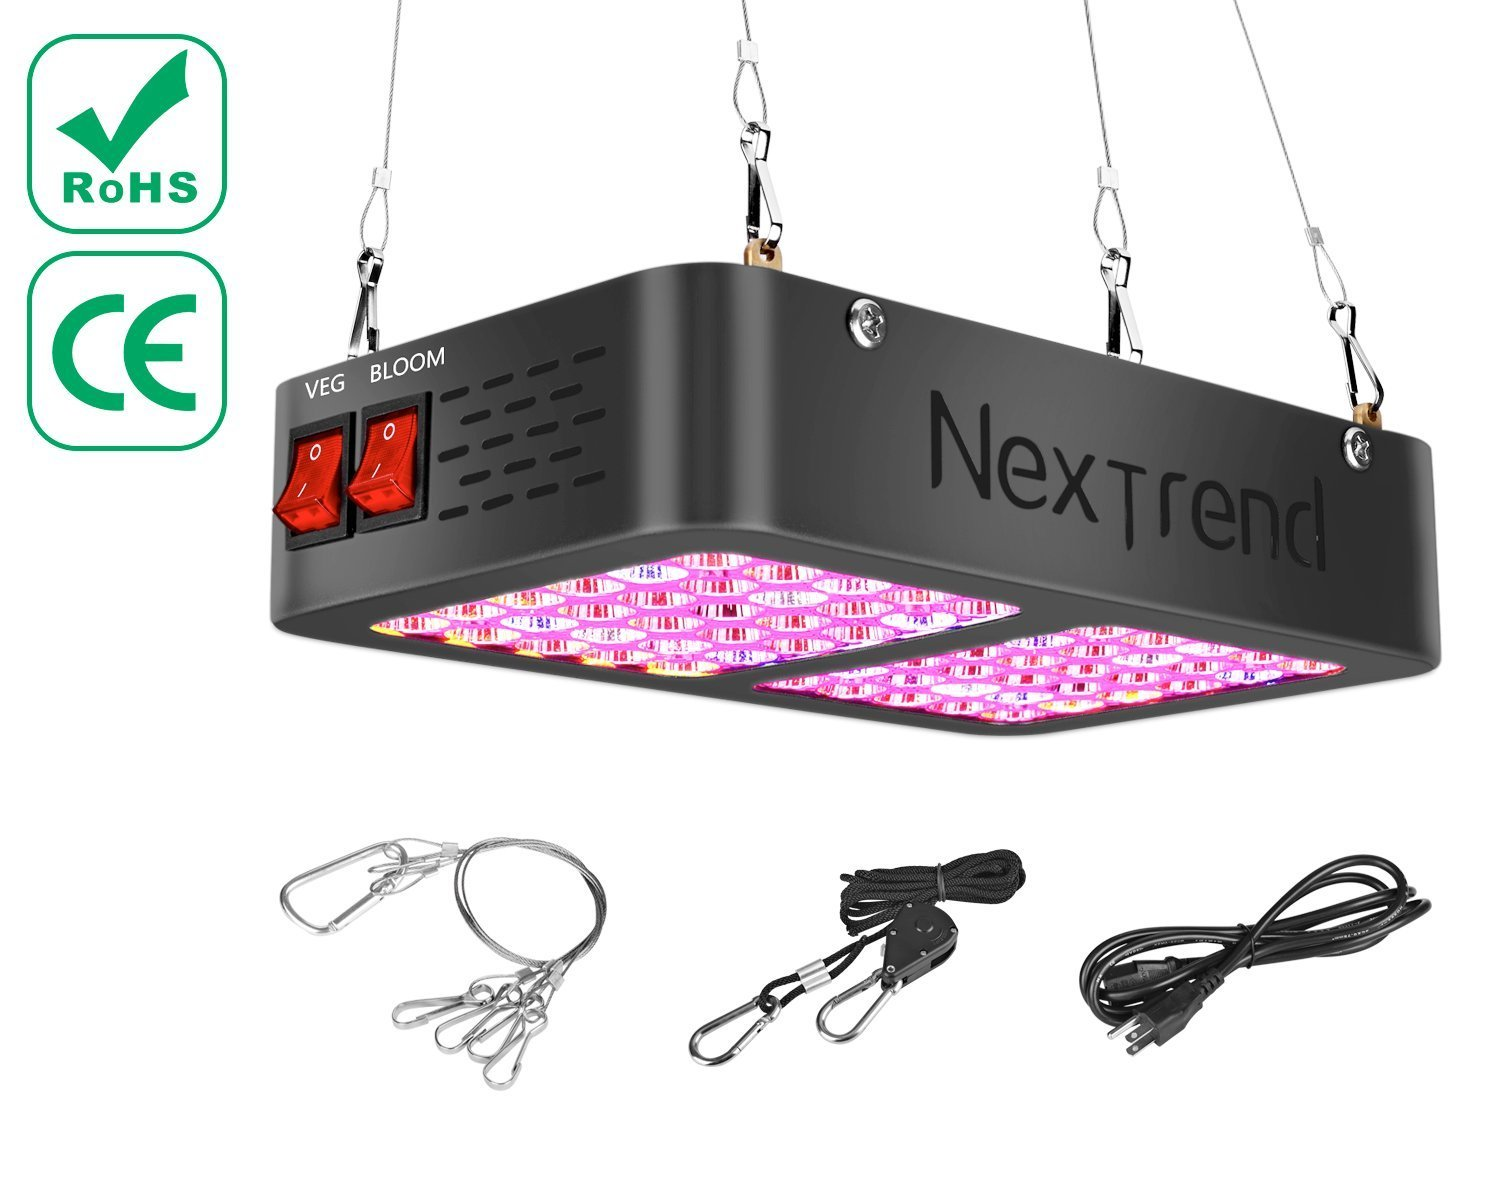 NexTrend LED Grow Light 300W, Double Chips Full Spectrum Grow Lamp Optimal Led 60° COB Reflector For Horticulture Hydroponics Indoor Plants Veg and Flower, Added Daisy Chain Design (Actual Power)